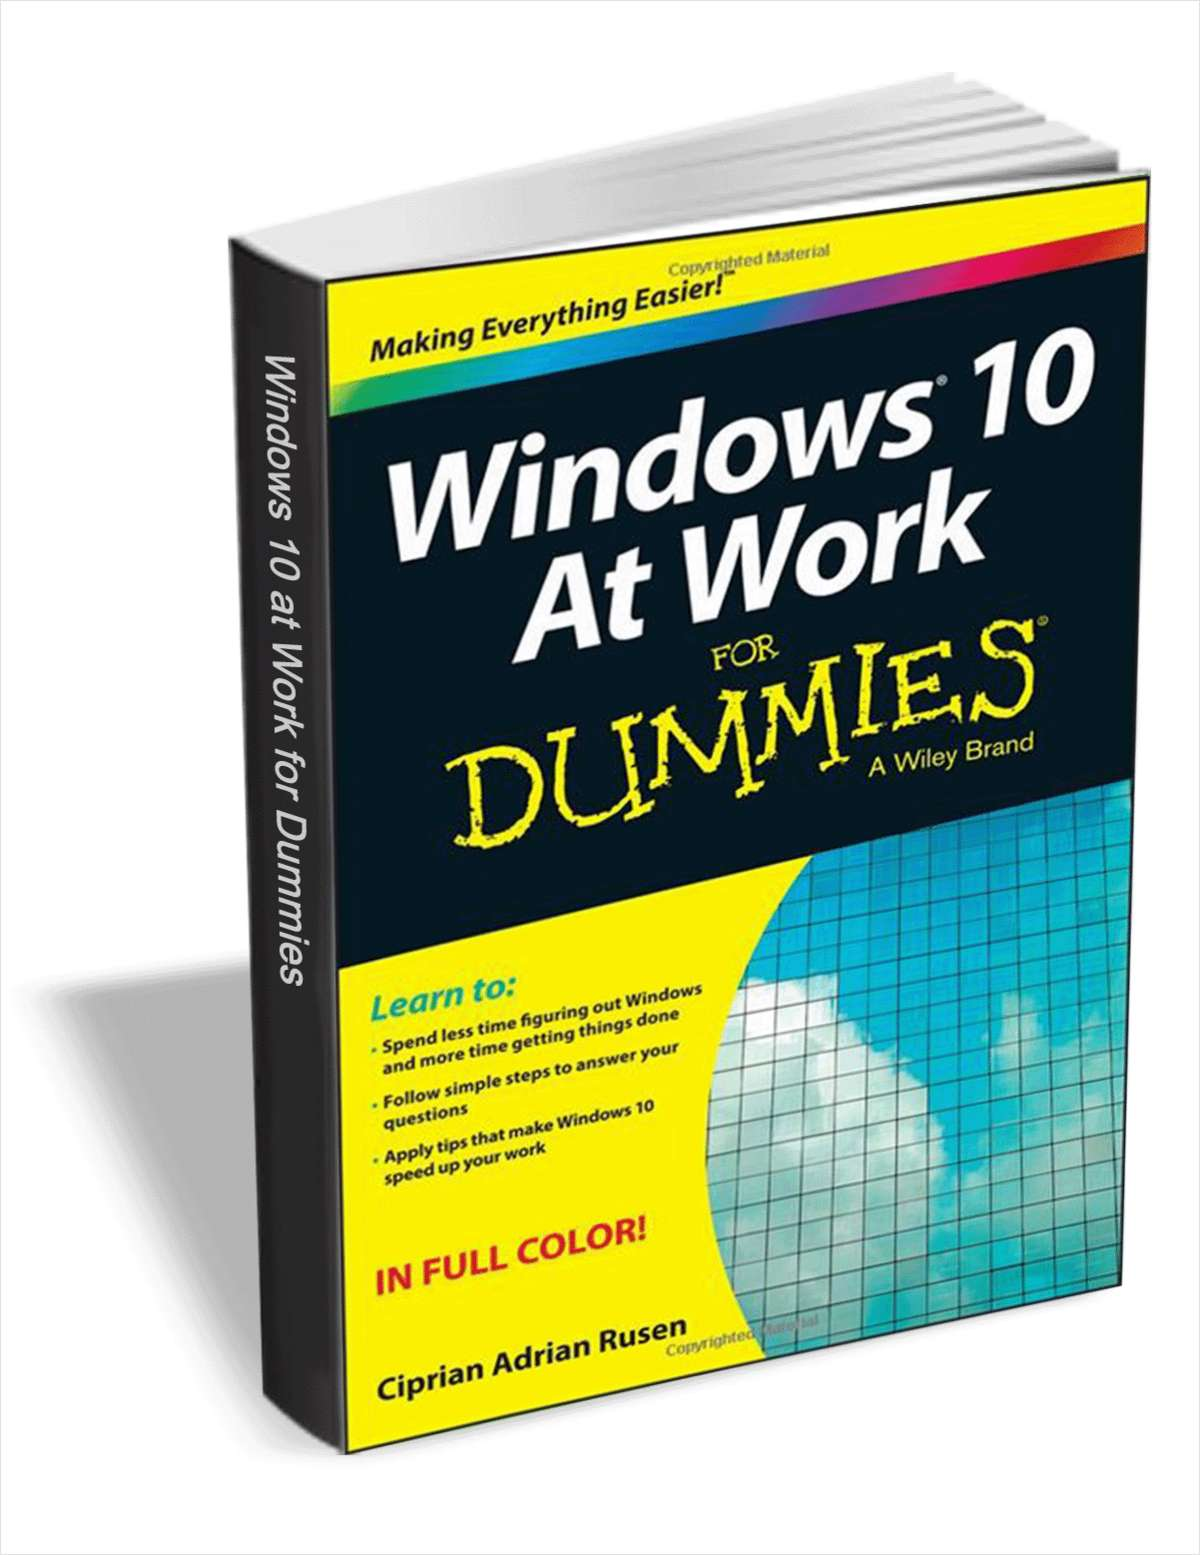 GearDiary Get 'Windows 10 at Work for Dummies' for FREE  -- Regular Price $17.99!